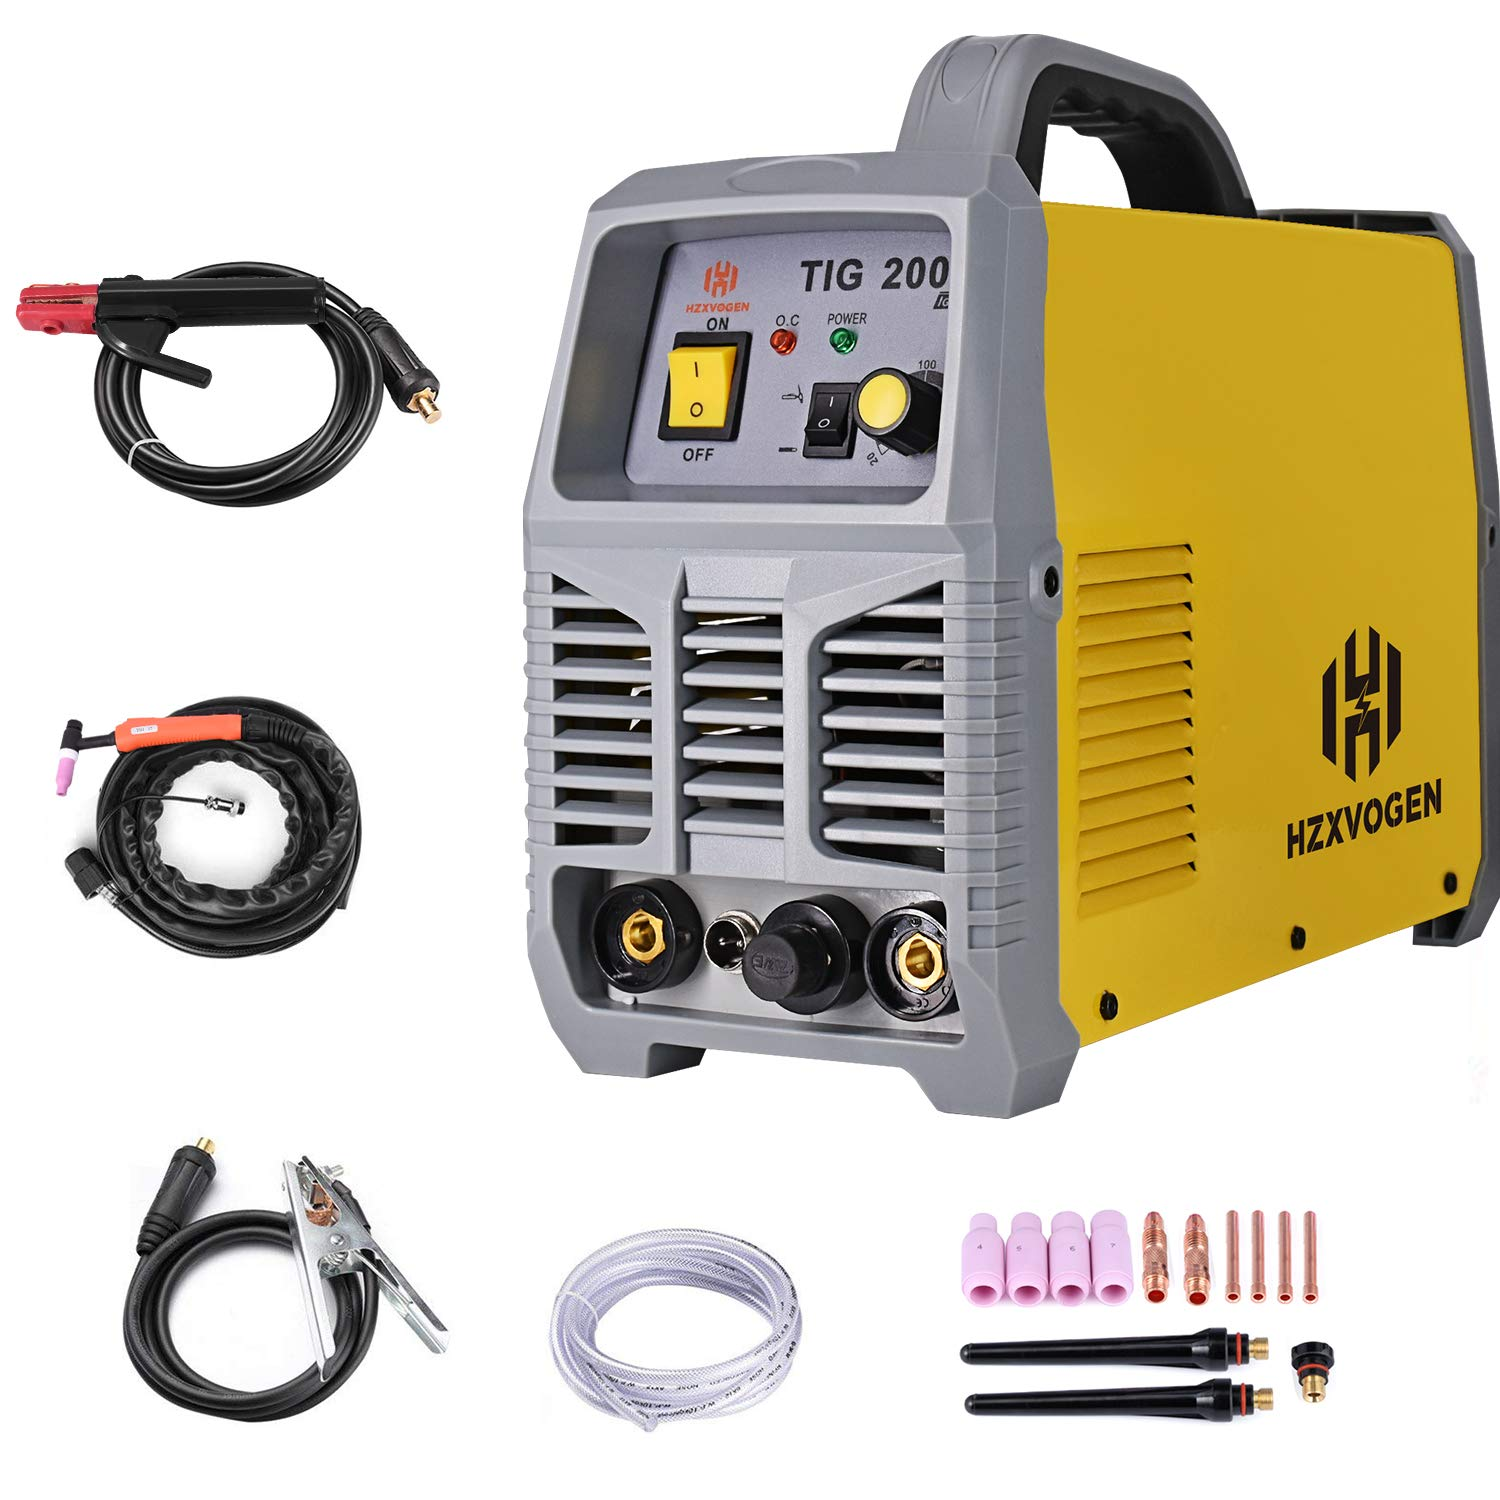 HZXVOGEN TIG Welder 220V 200A TIG ARC Stick MMA IGBT DC Inverter Continuous High Frequency Welding Machine for Stainless Steel Carbon Steel Model: TIG200A